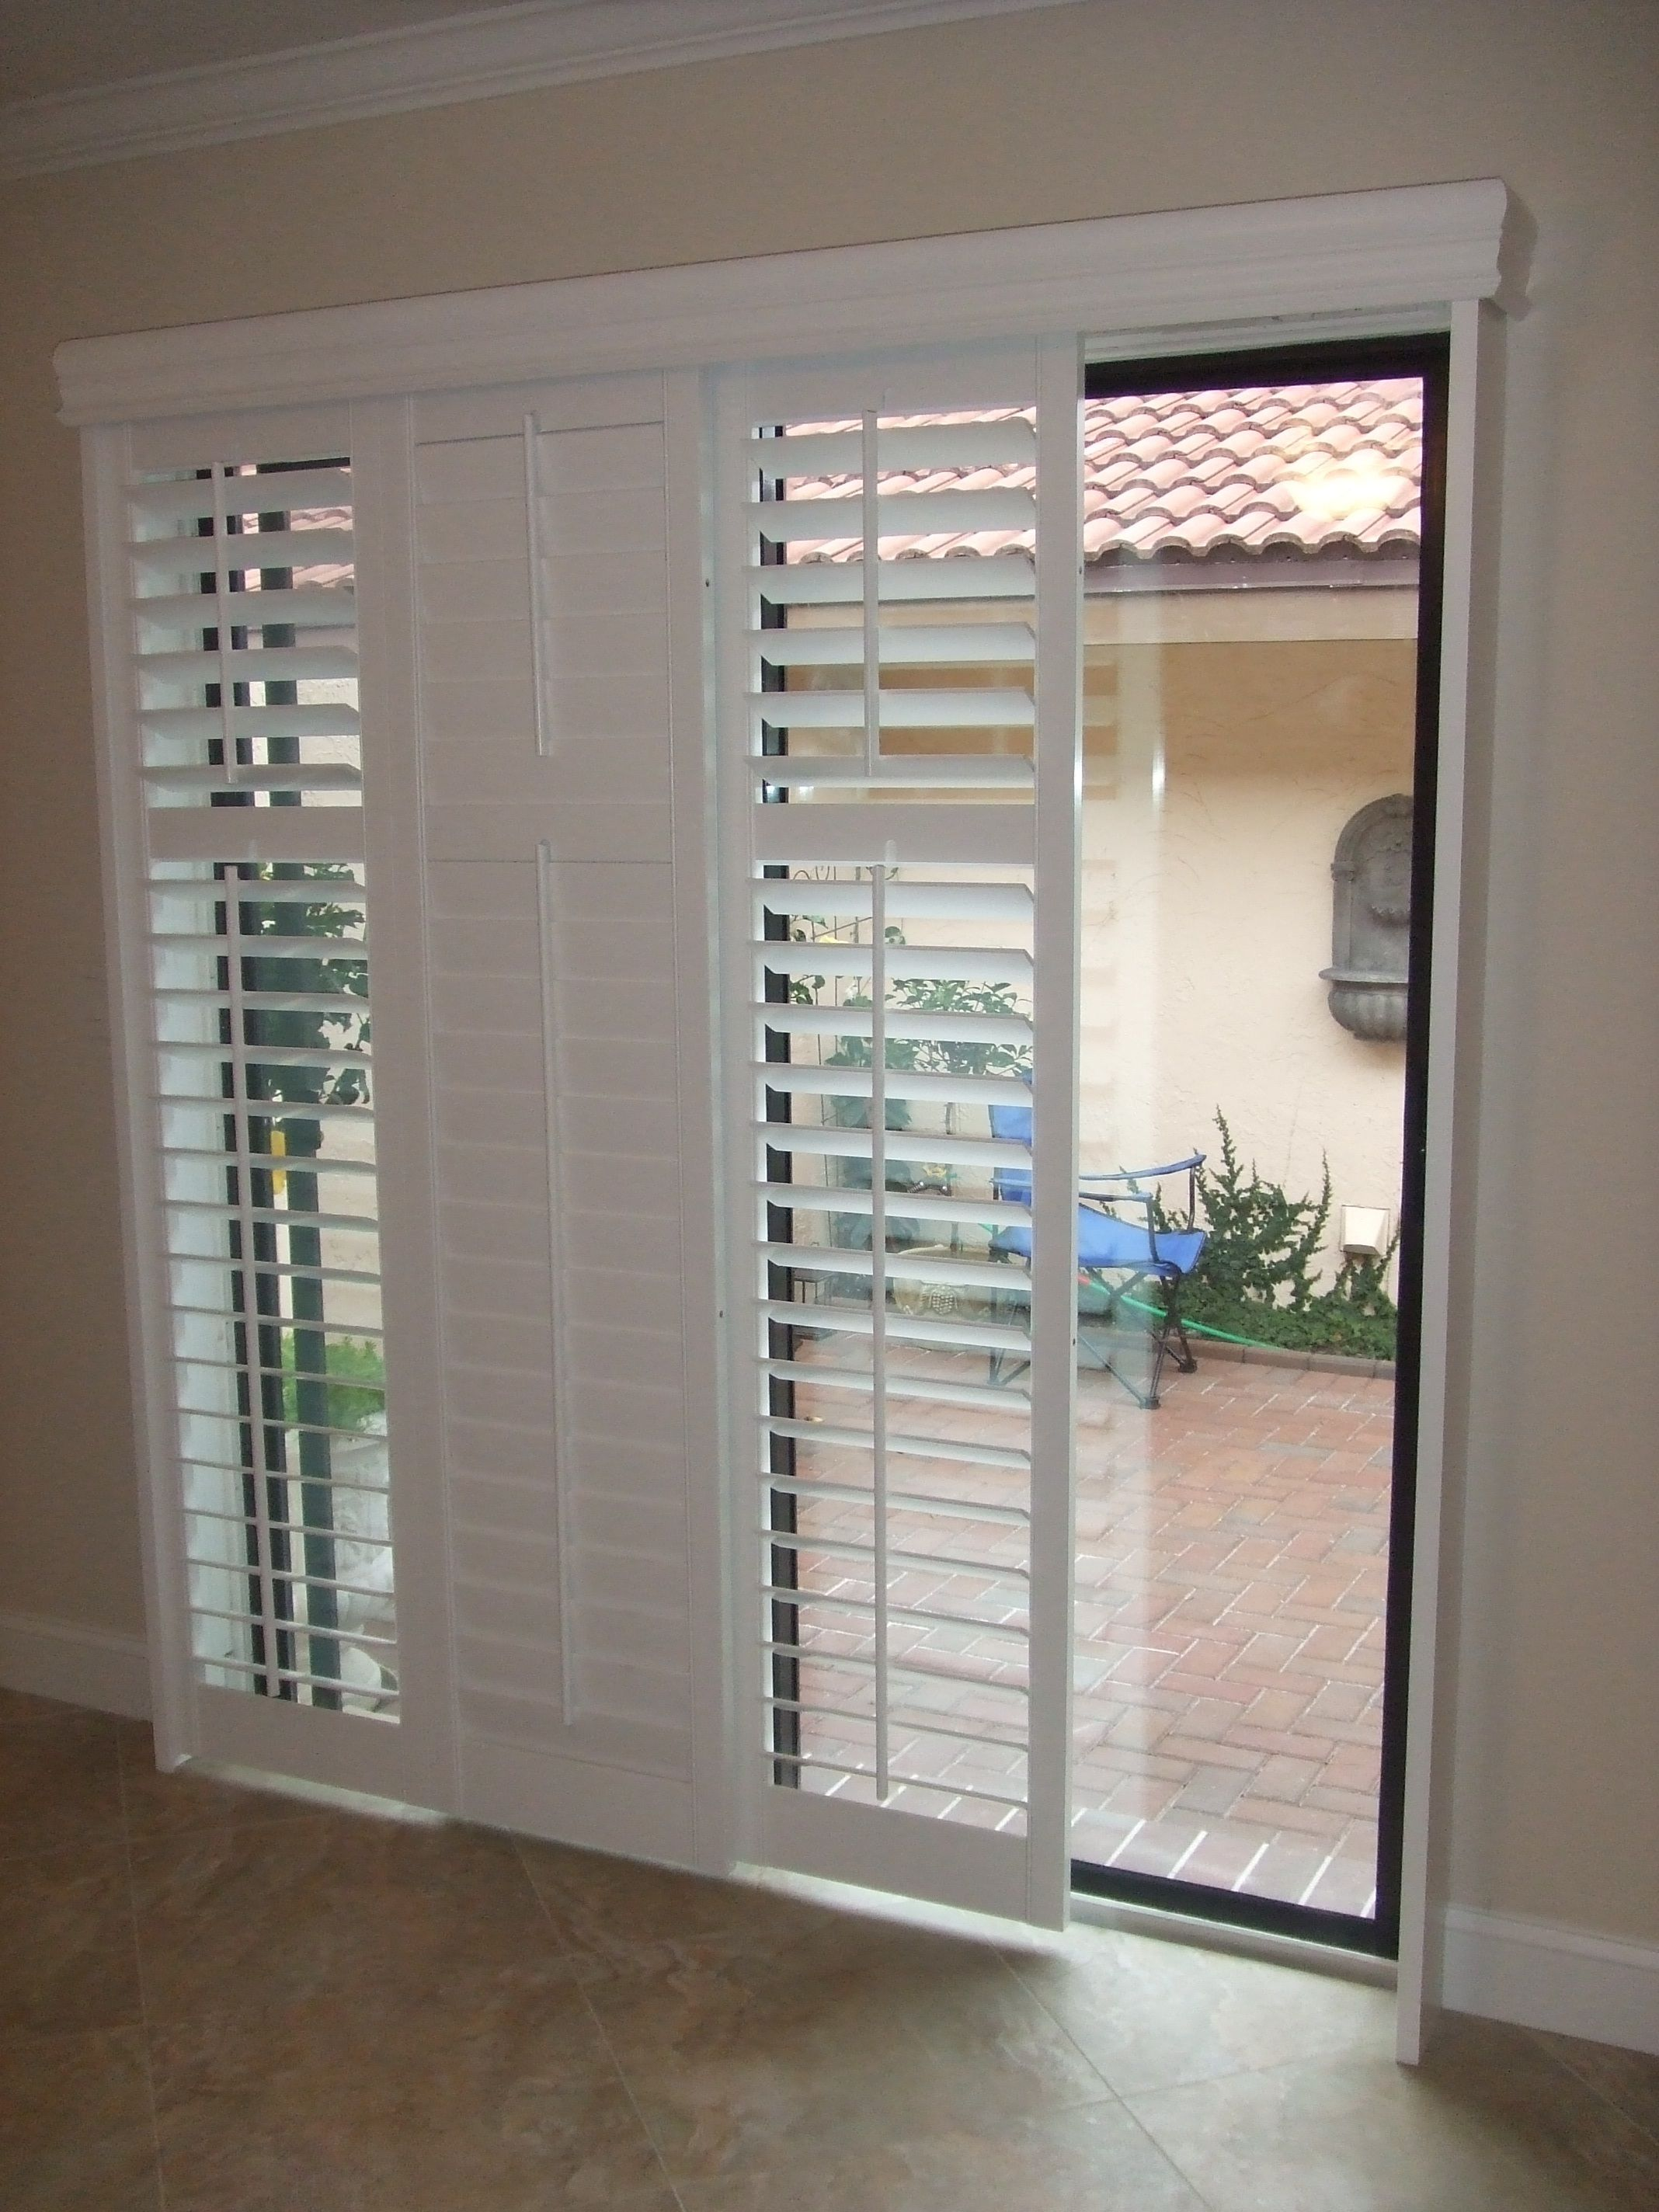 door doors for patios shades the up porch home blinds plasticades roll canvas porchoors vinyl glass outdoor patio peytonmeyer bamboo depot net